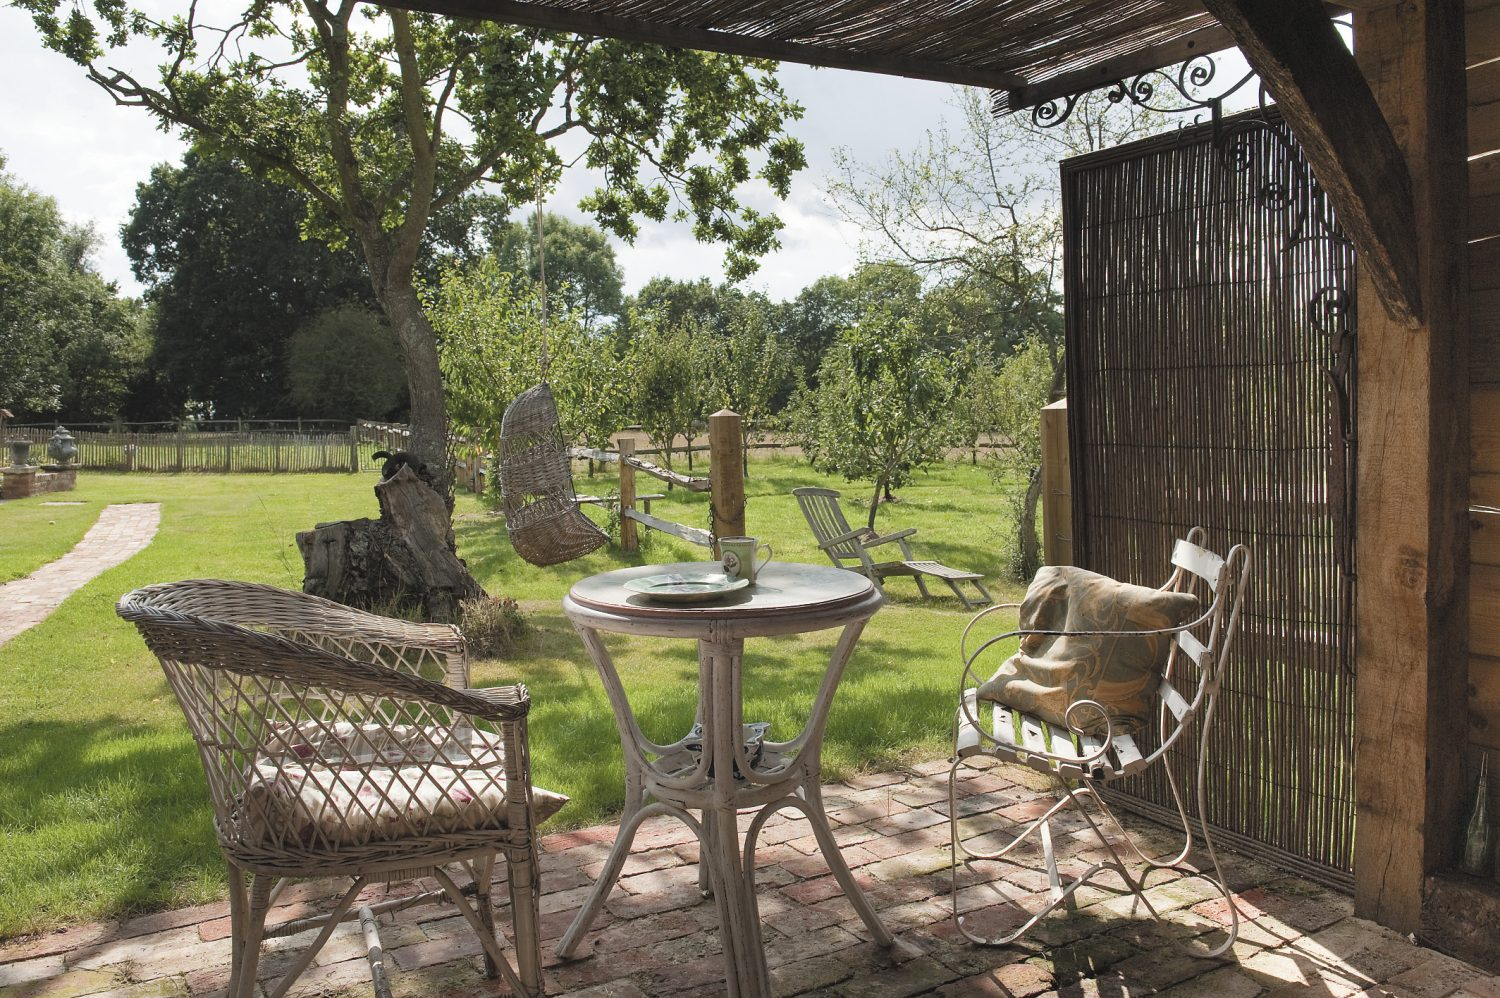 the summerhouse looks out onto the orchard